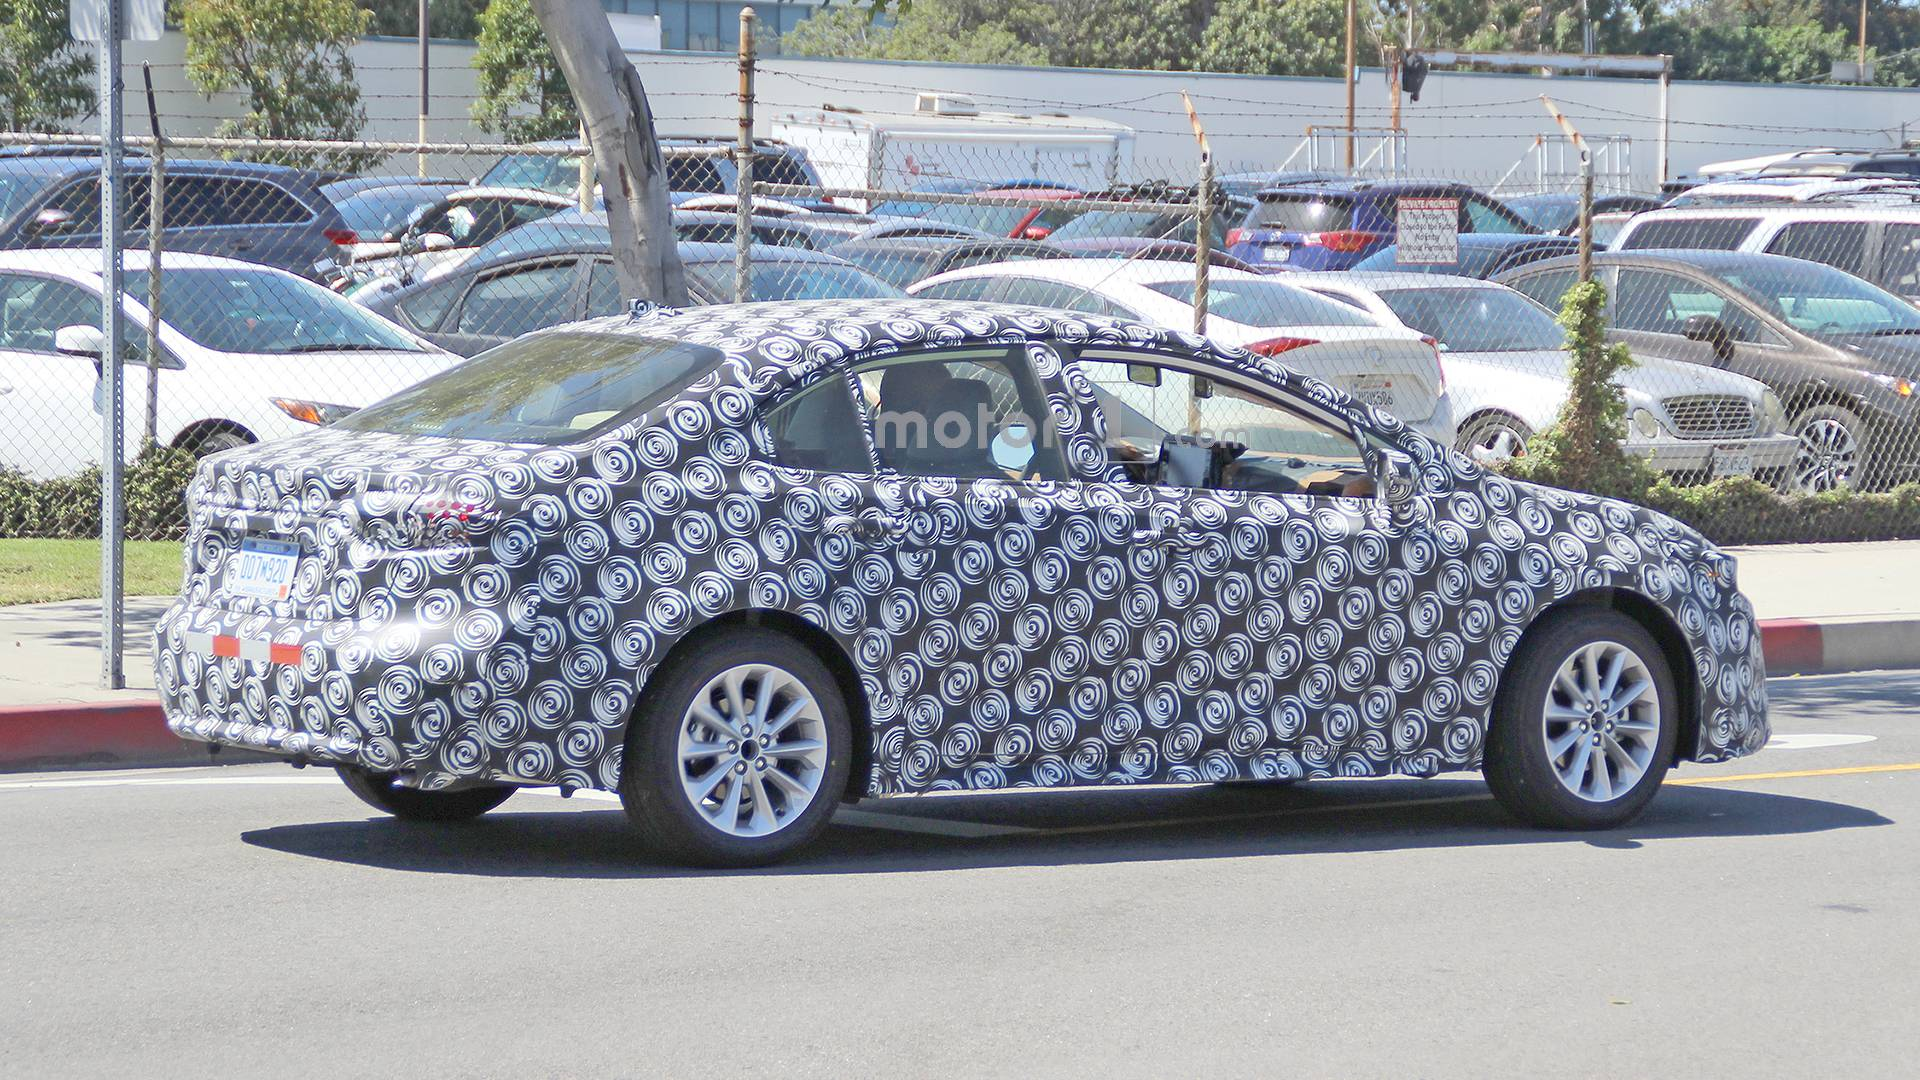 2020-toyota-corolla-spy-photo (3)